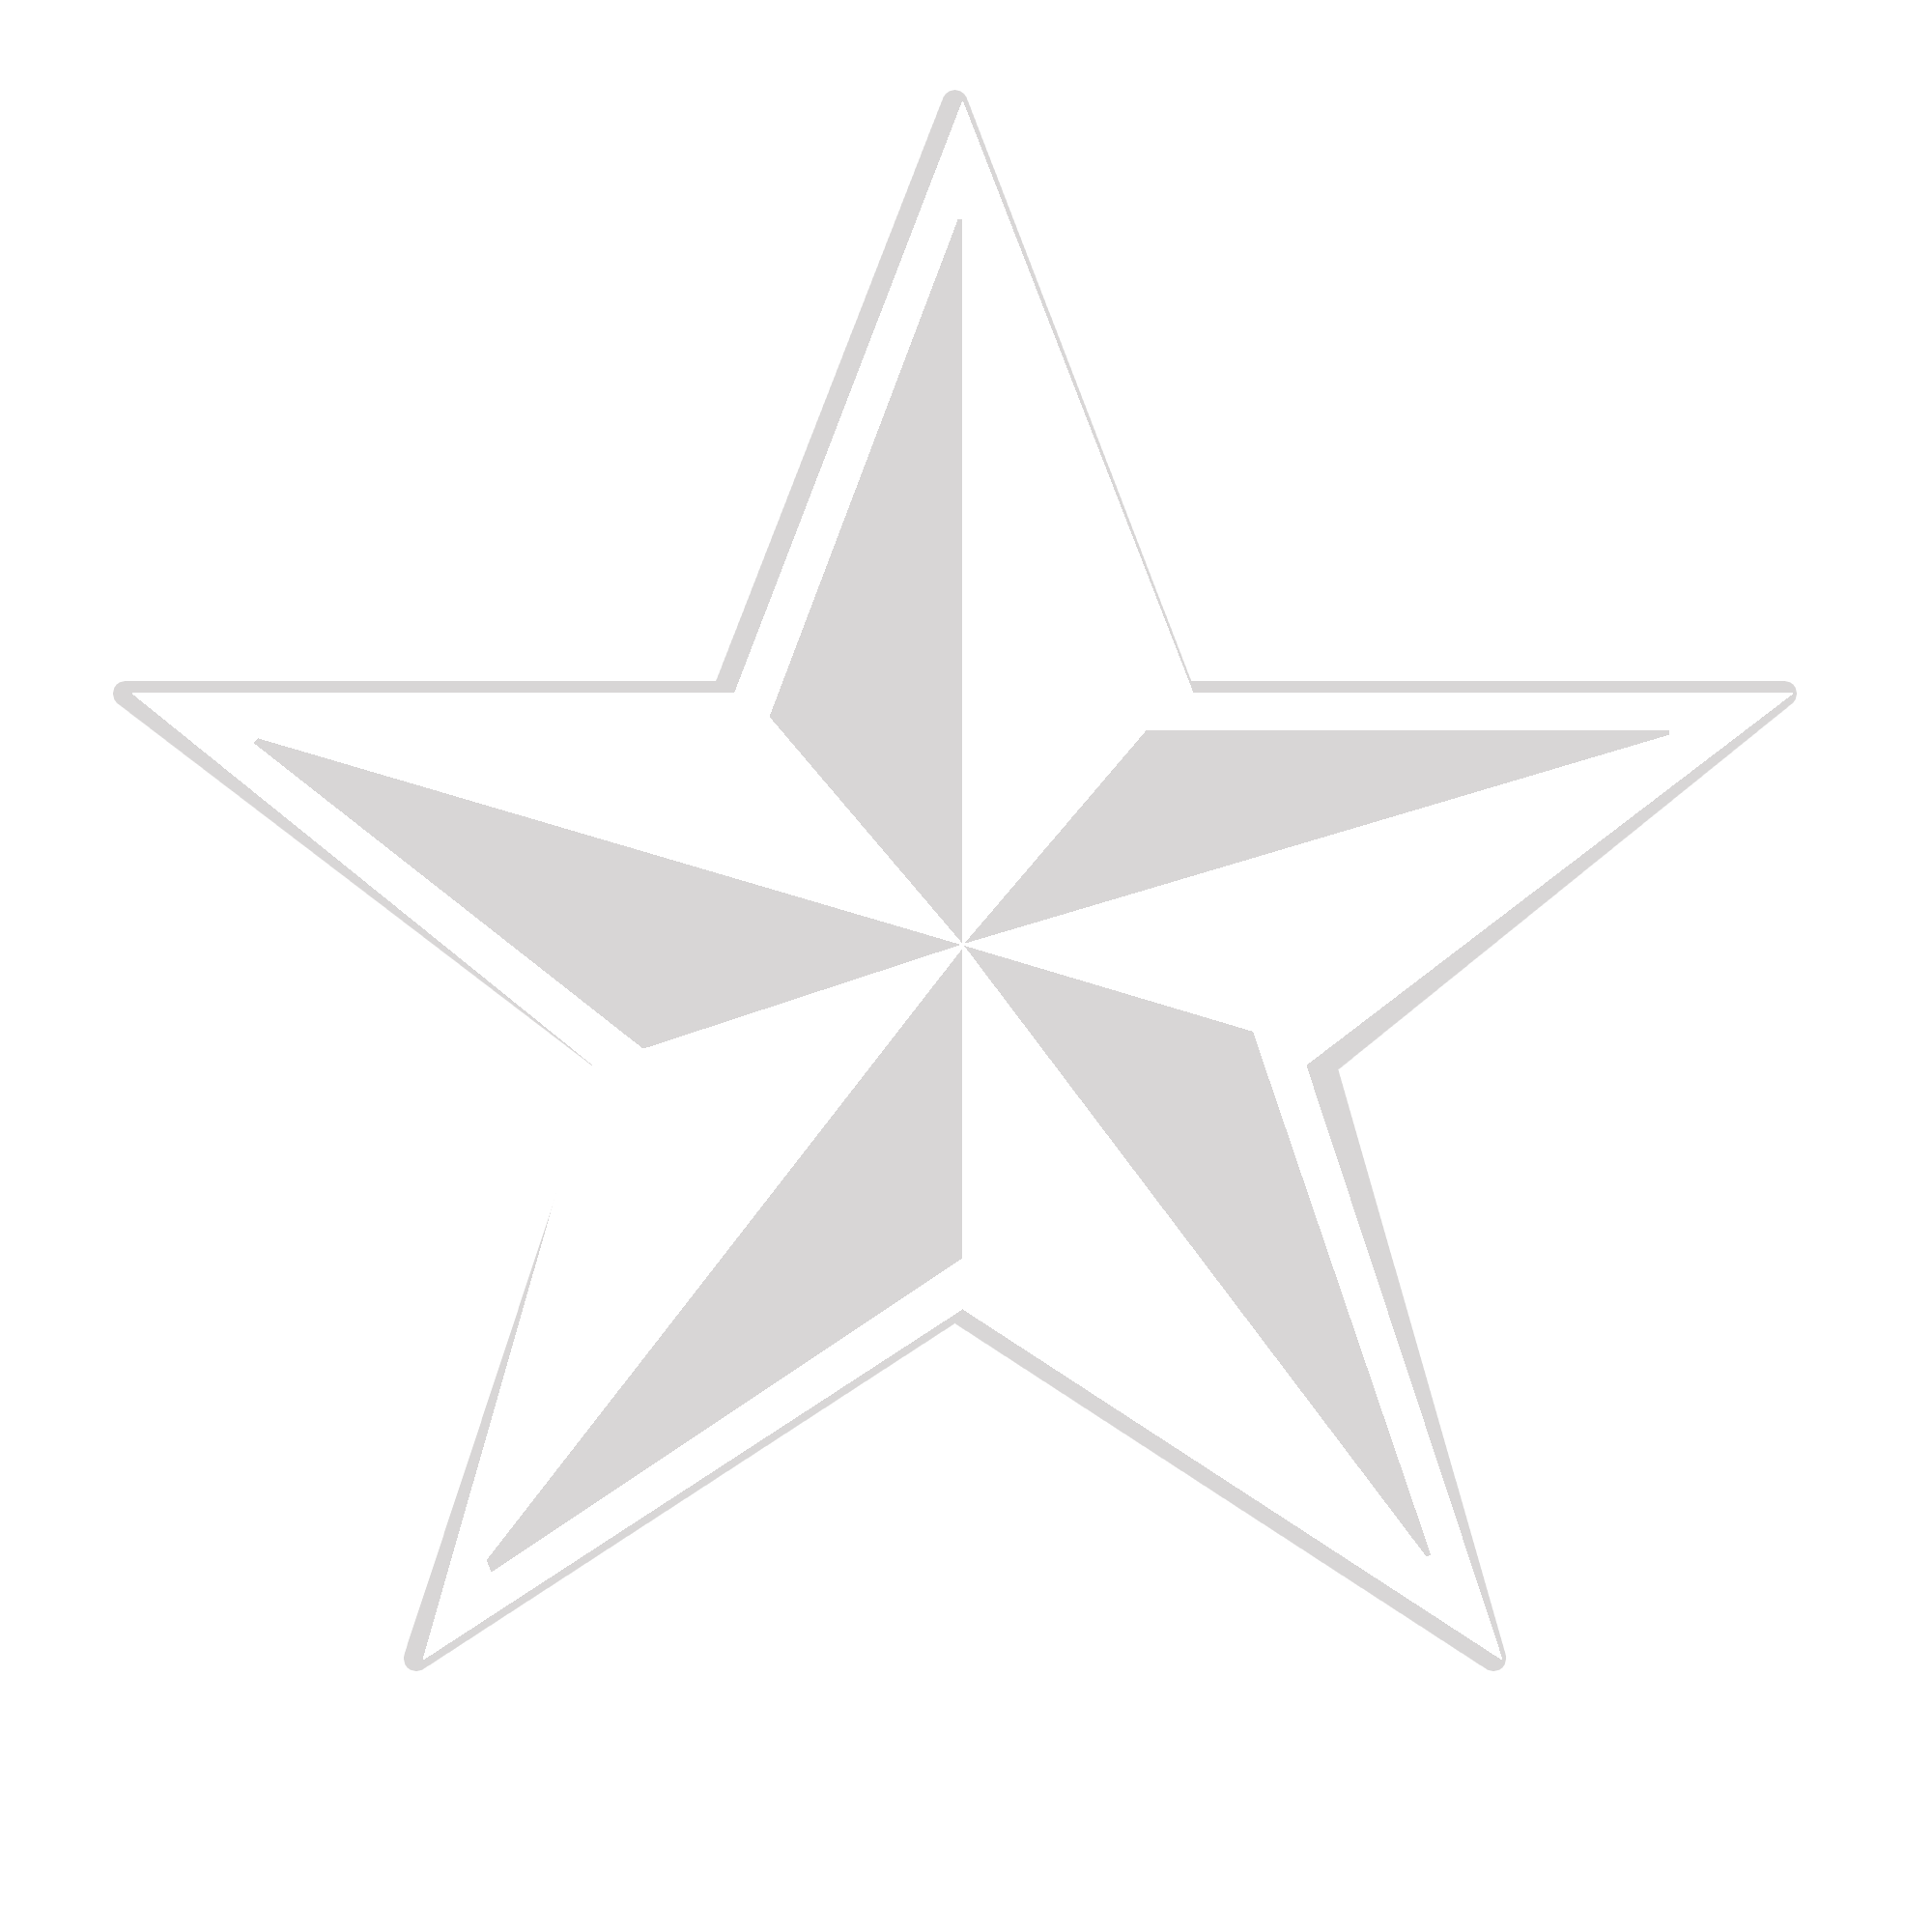 Free Download 3d White Star Png Vector Image Star Icon Png This Is Vector 3d White Star Png It Can Be Used In Making White Board An Png Stars Youtube Thumbnail